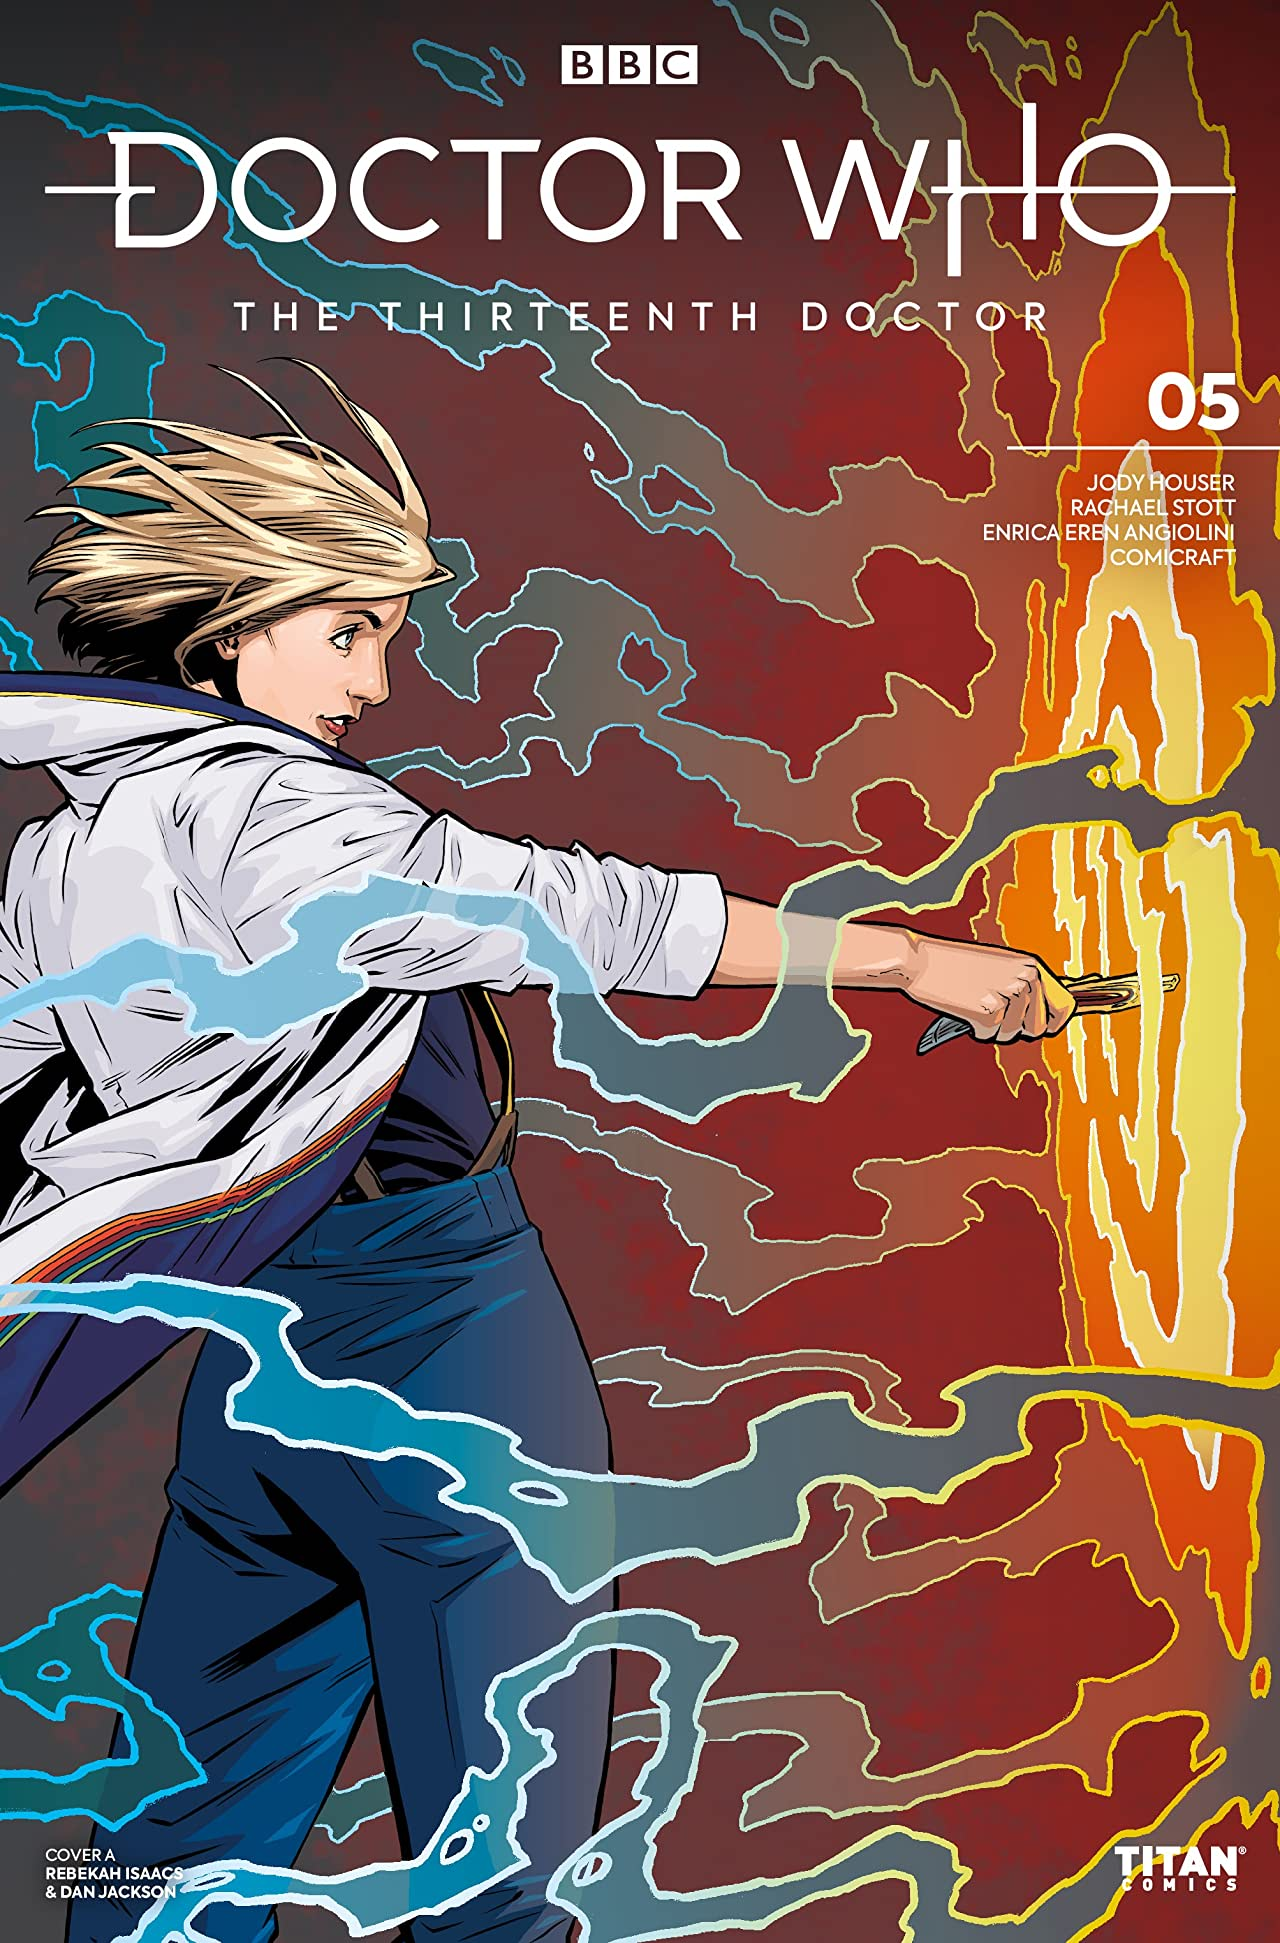 Doctor Who: The Thirteenth Doctor No.5